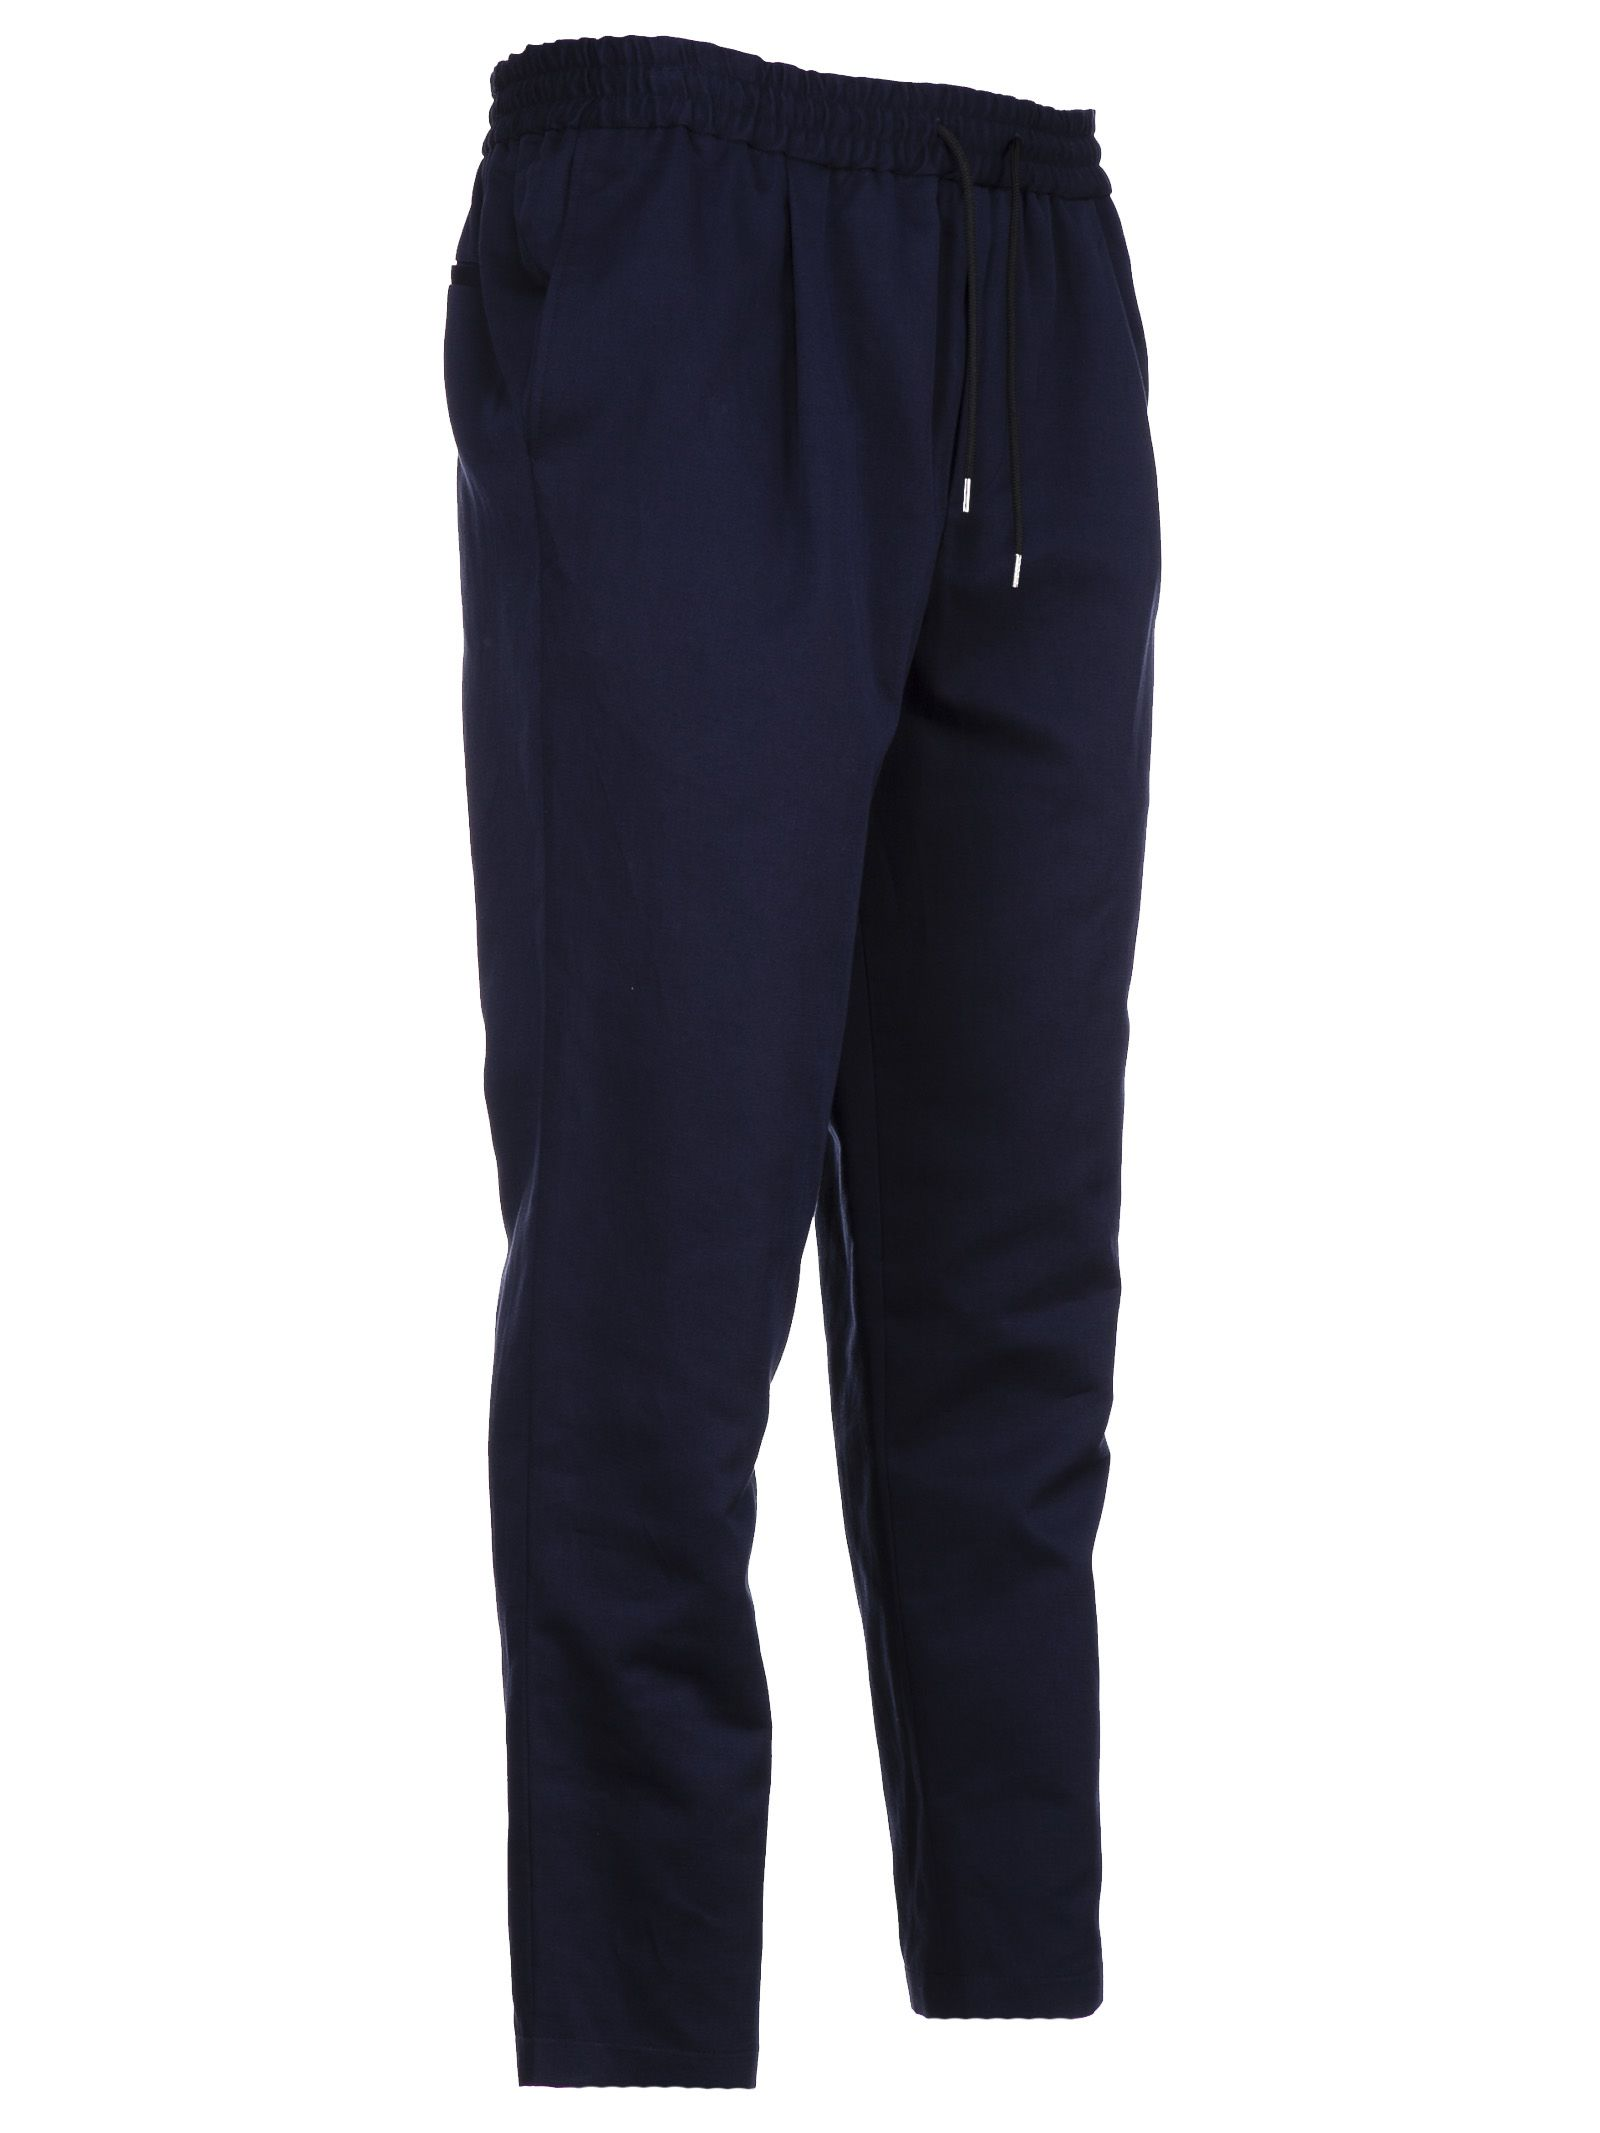 tailored track pants - Blue Alexander McQueen Outlet How Much Buy Cheap Perfect nEW4ZPaGnE